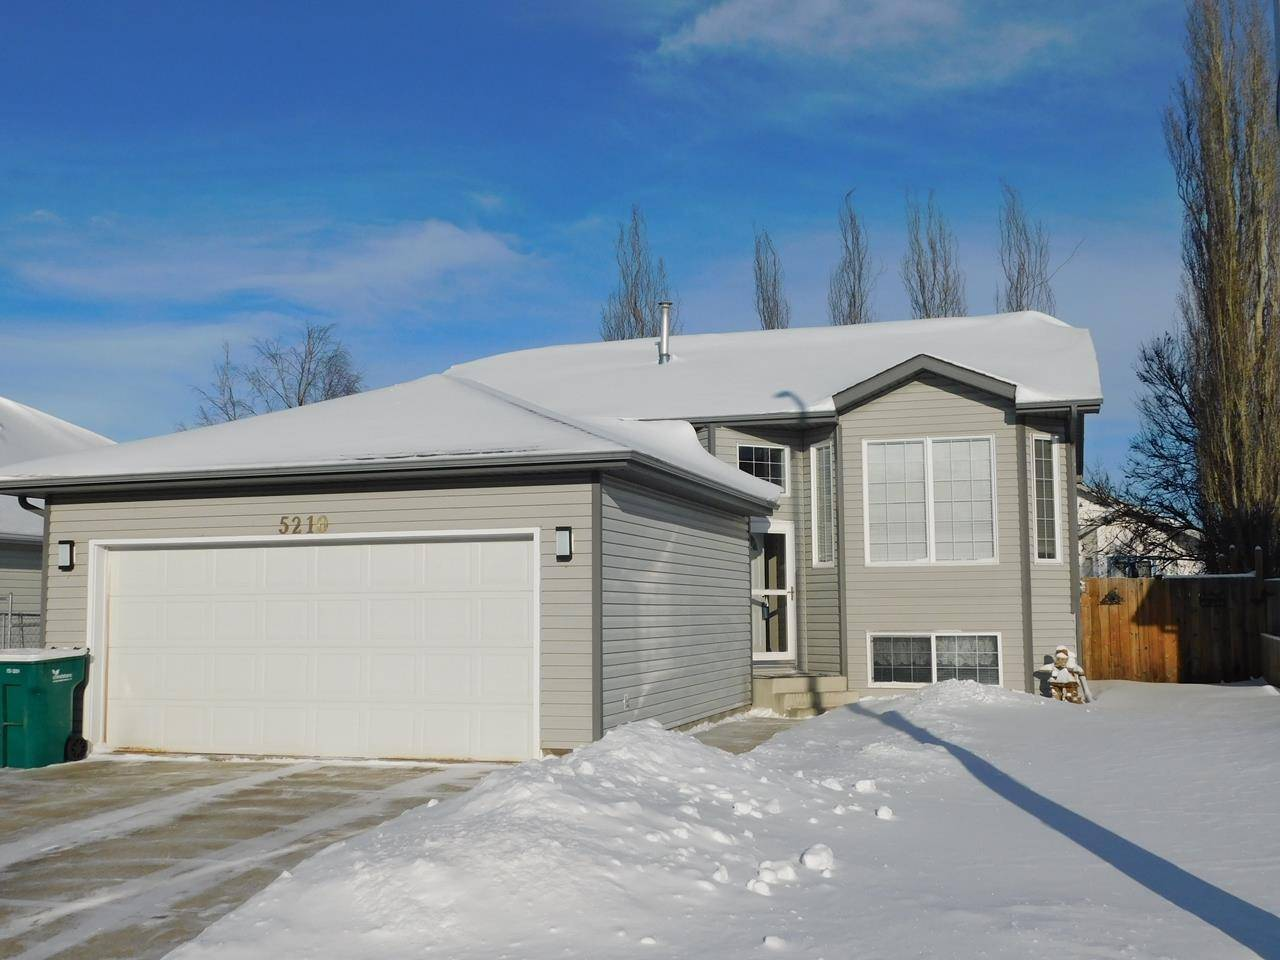 House for sale at 5210 47 Ave Gibbons Alberta - MLS: E4184601